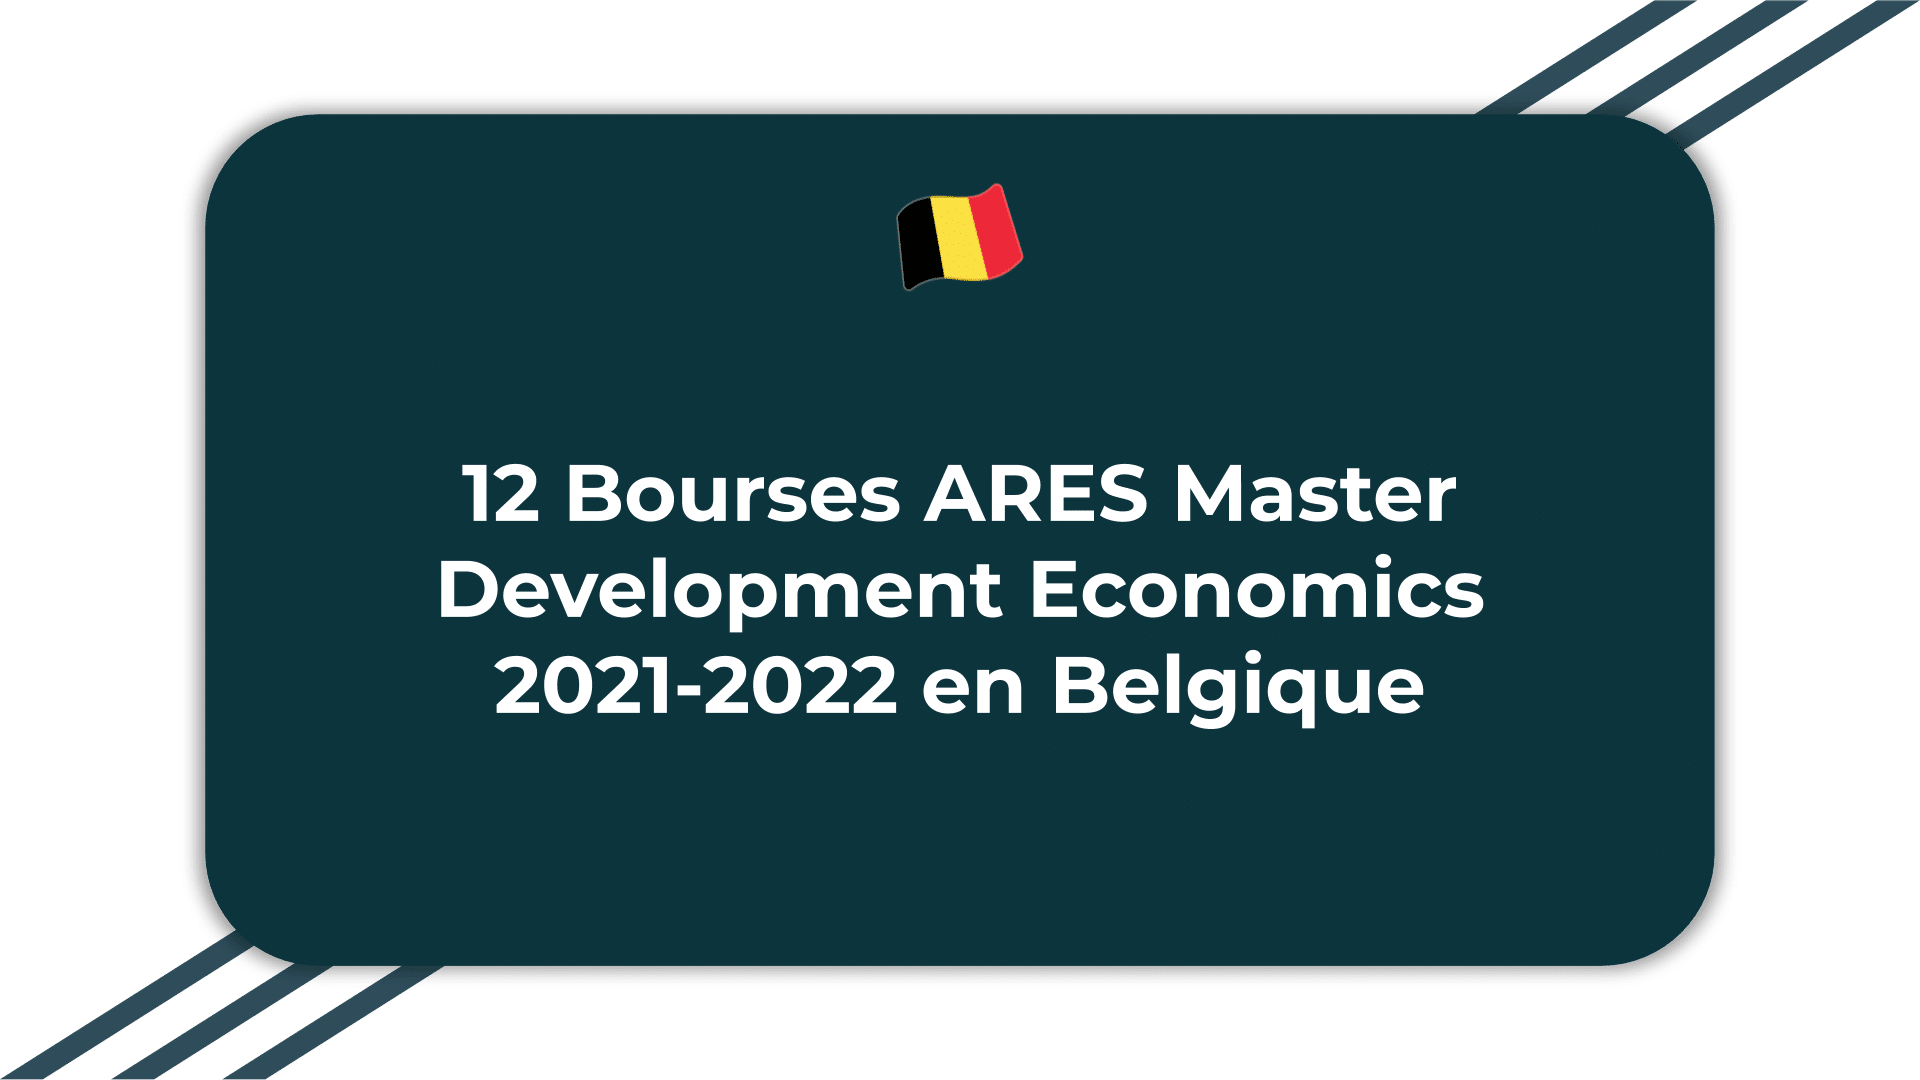 12 Bourses ARES Master Development Economics